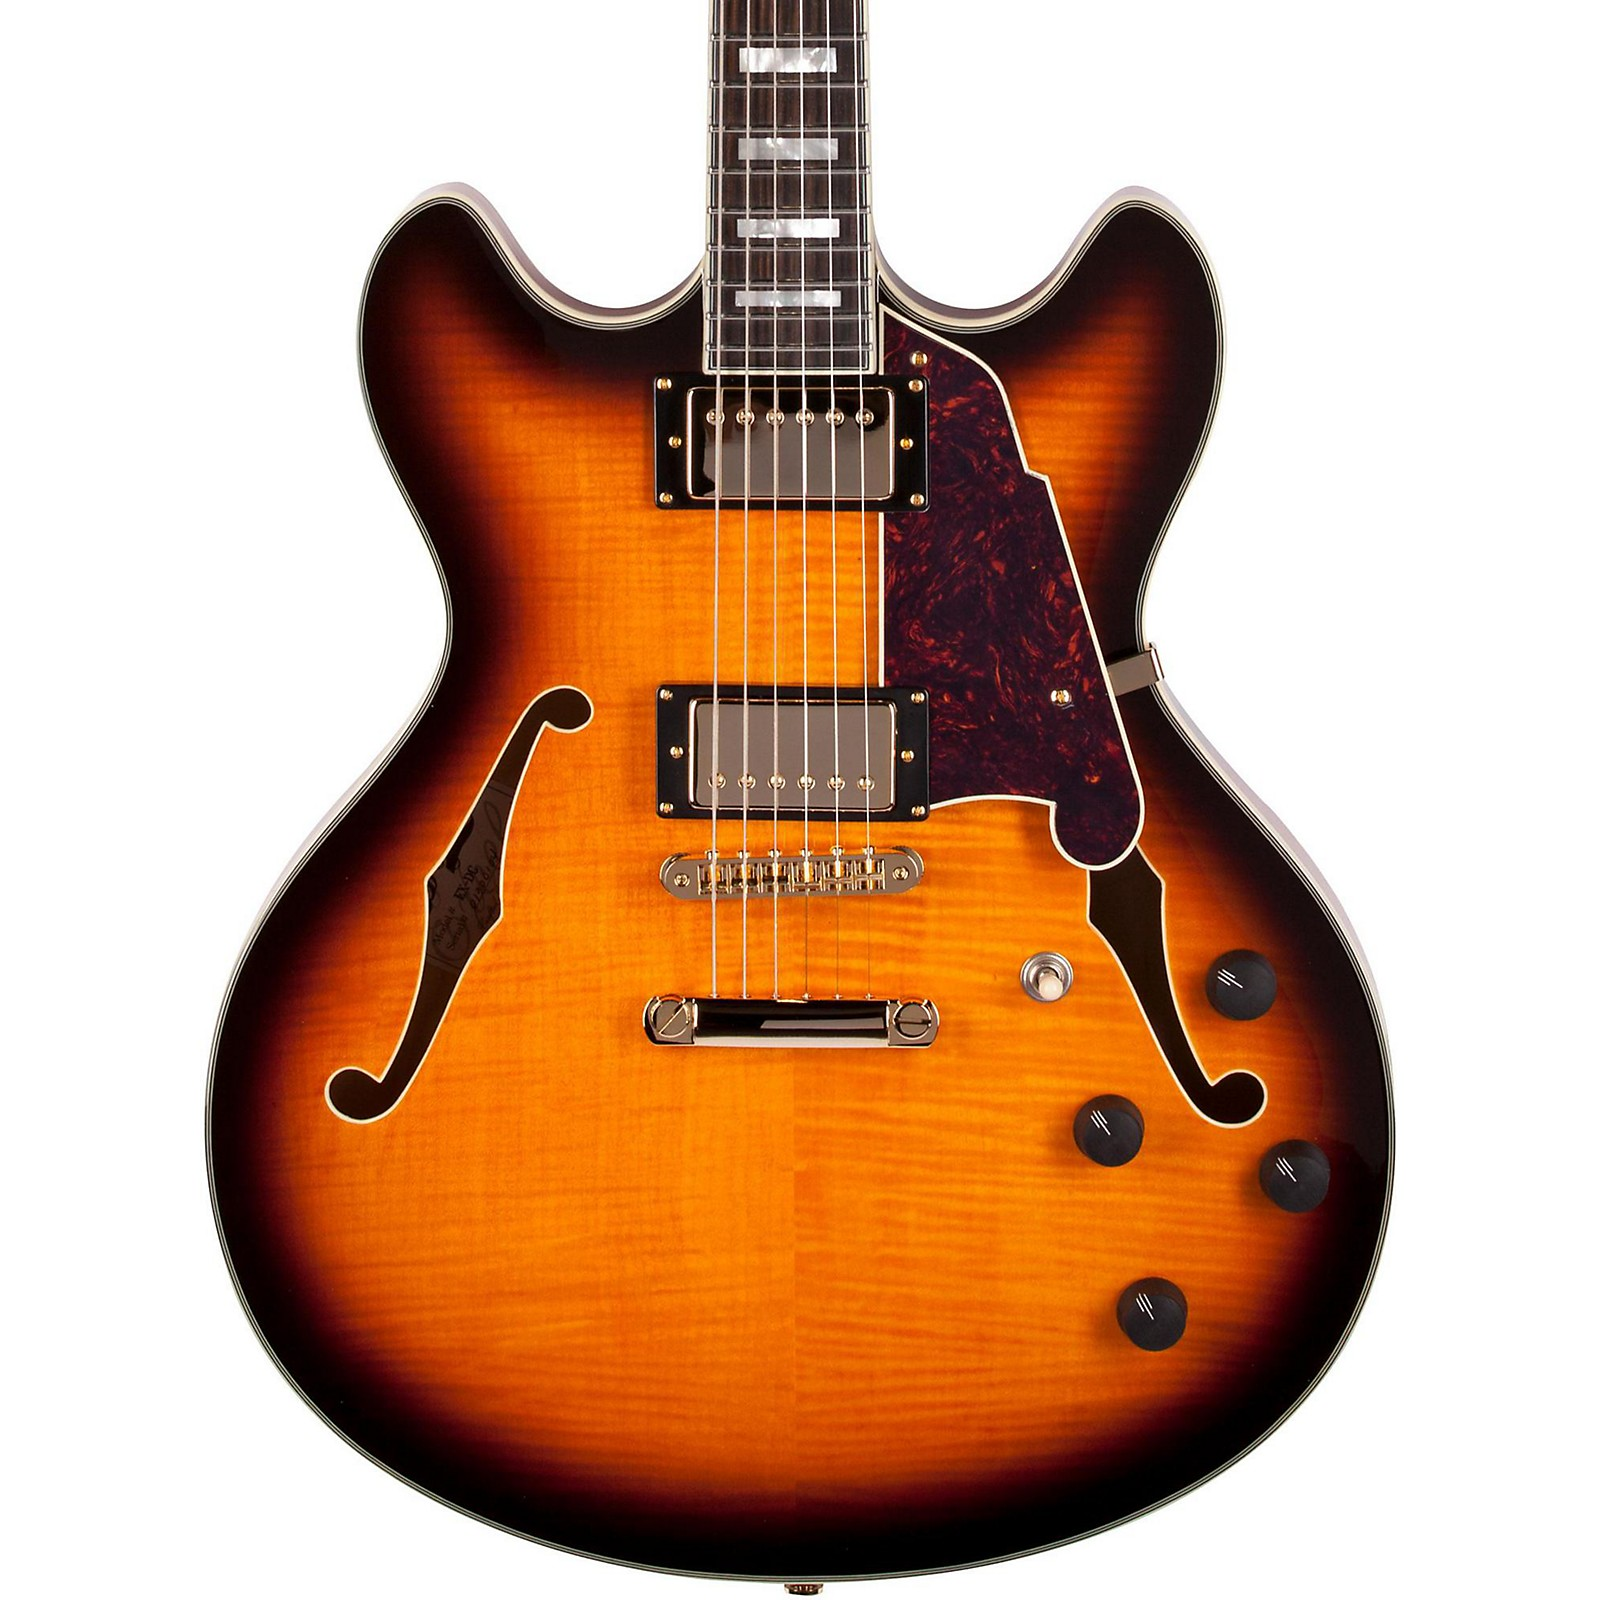 Open Box D'Angelico Excel Series DC Semi-Hollow Electric Guitar with Stopbar Tailpiece